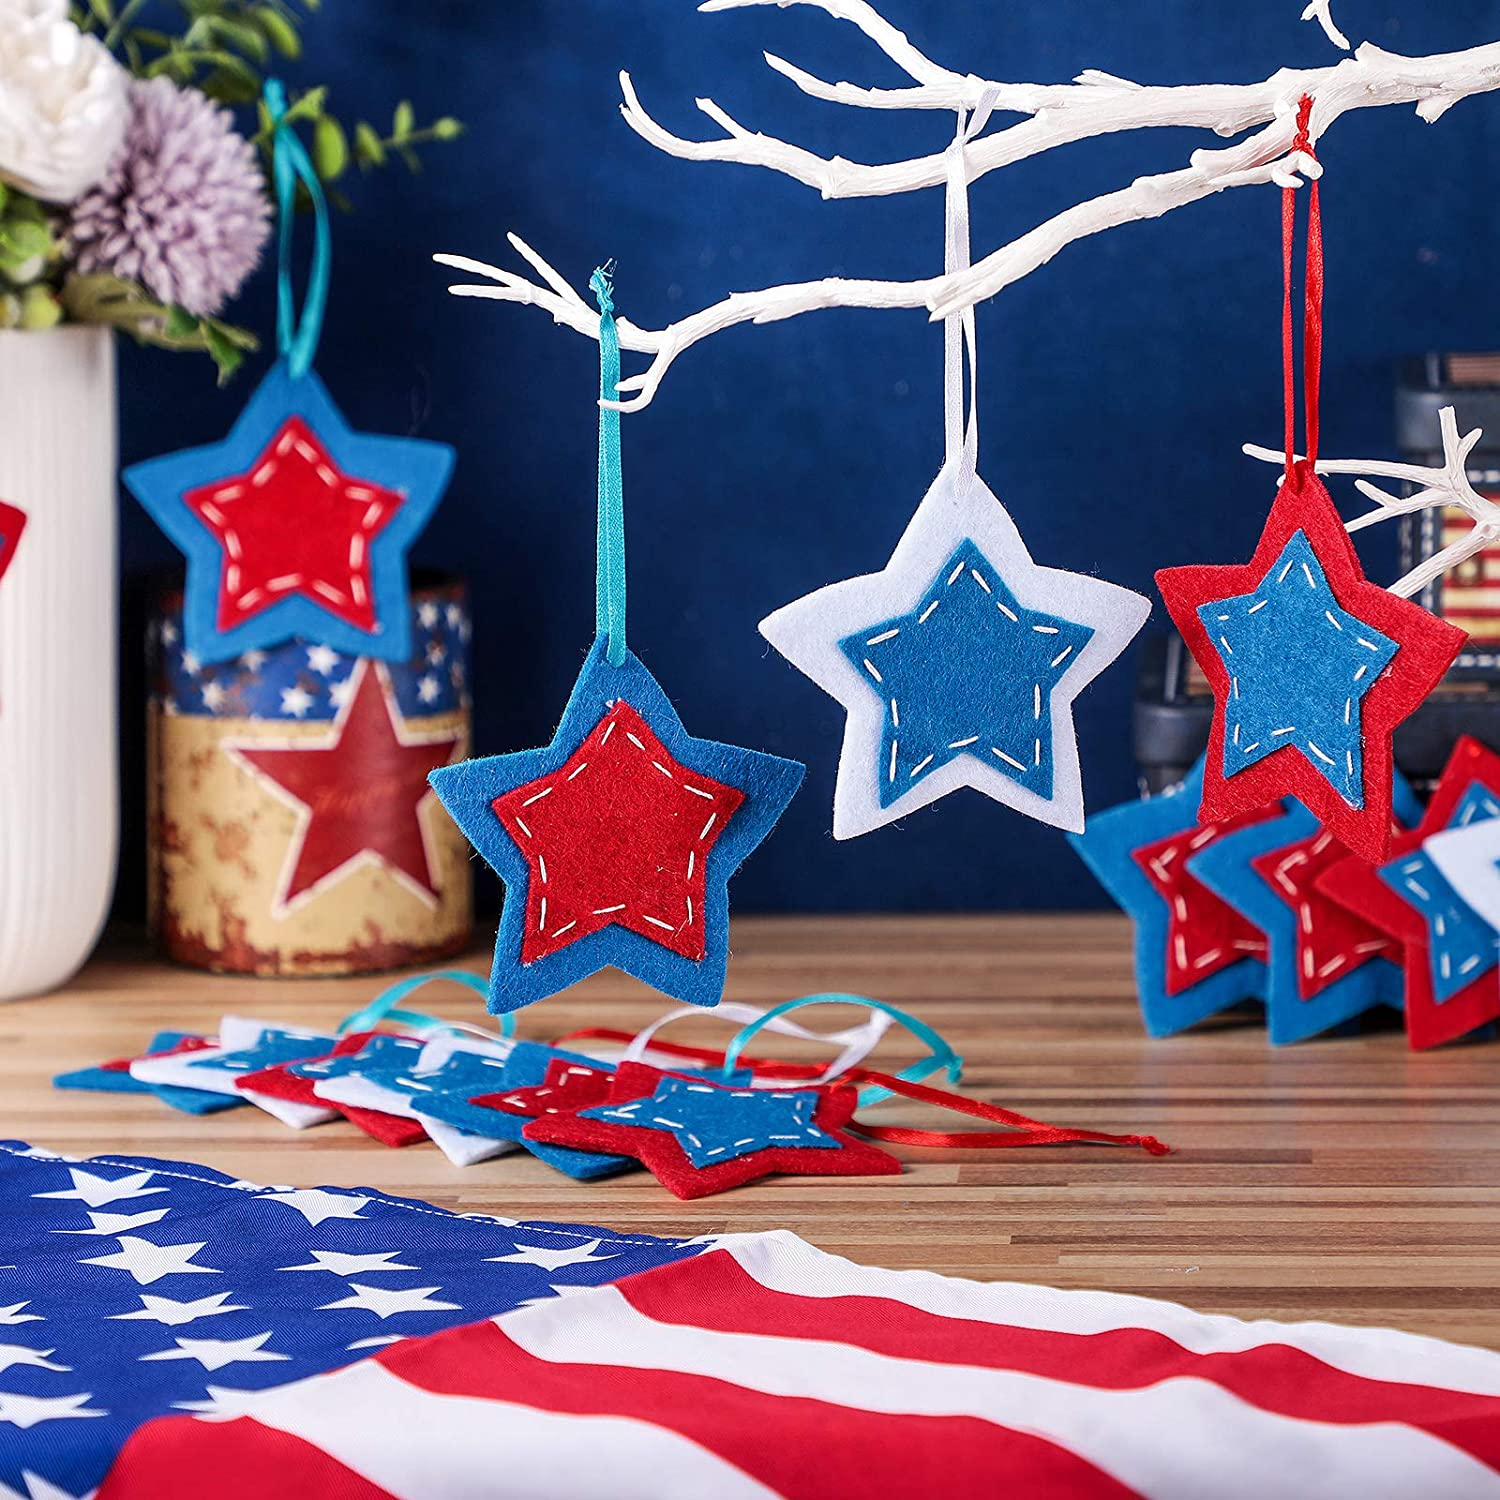 24 Pieces America Patriotic Star Ornaments Independence Day Red White Blue Felt Pentagram Ornaments for 4th of July Independence Day Flag Day Patriotic Theme Party Indoor Outdoor Hanging Decor